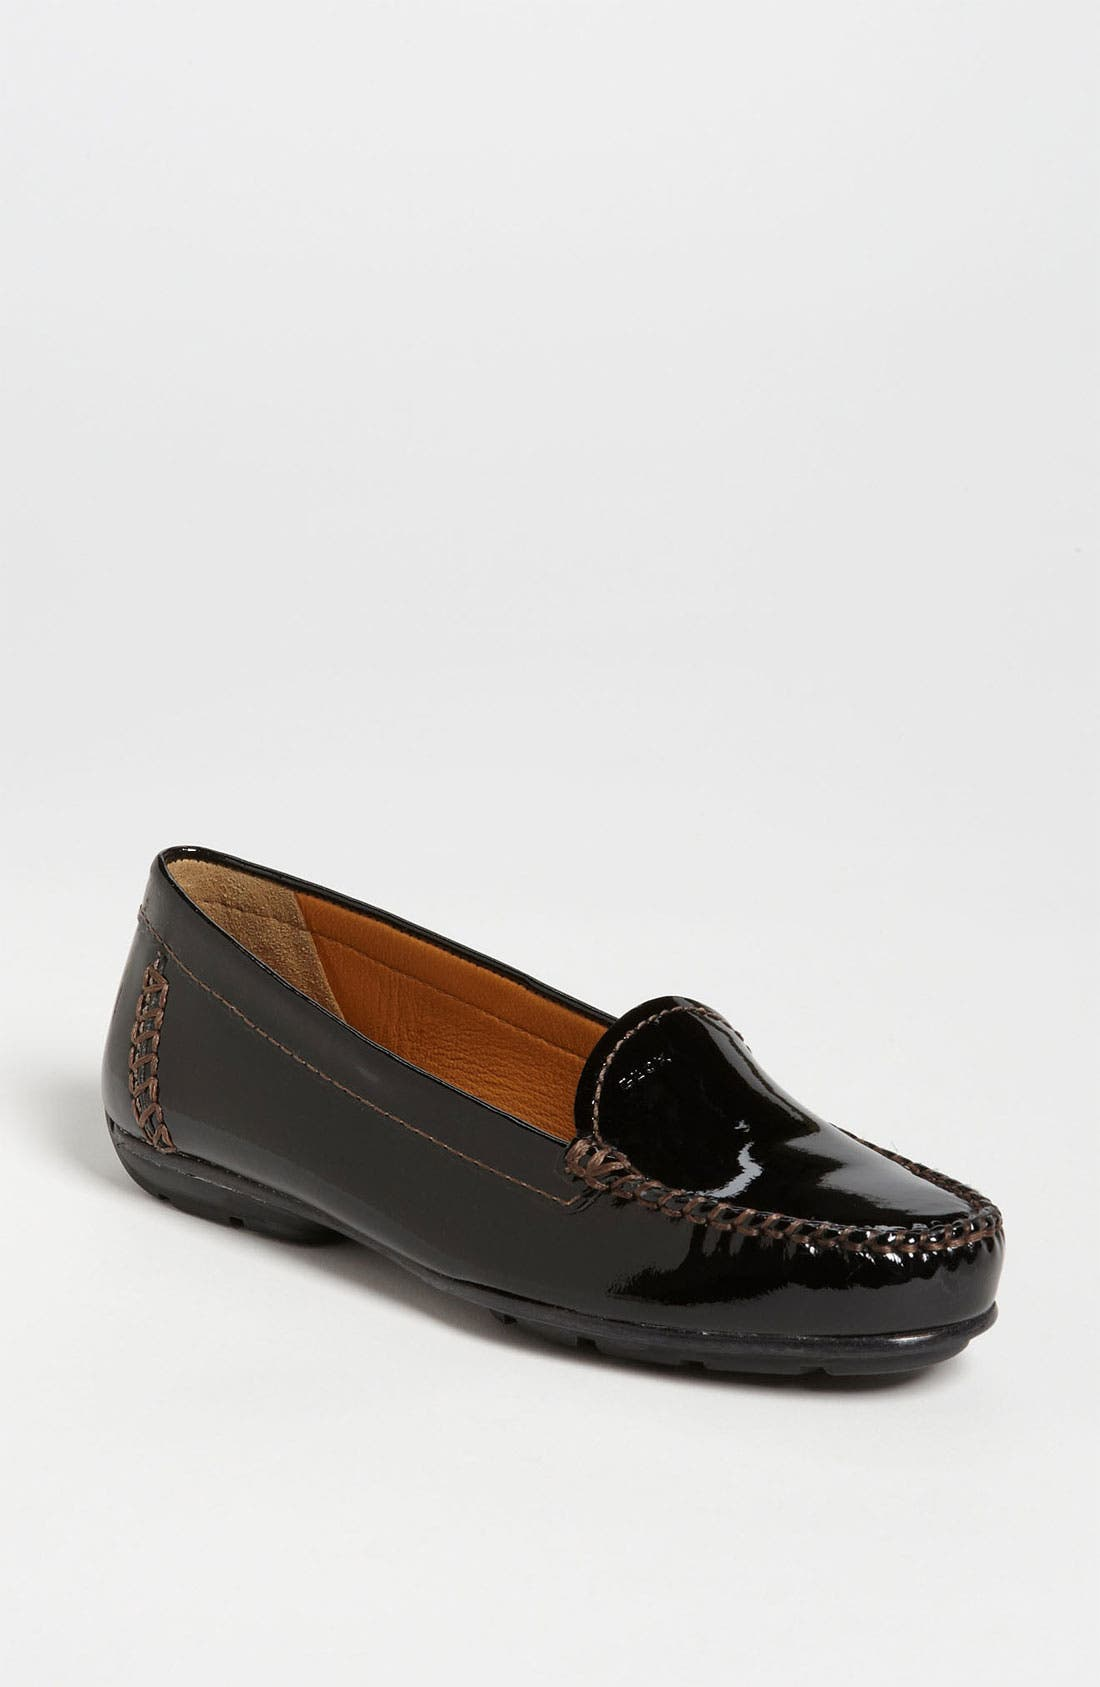 Main Image - Geox 'Donna - Italy' Loafer